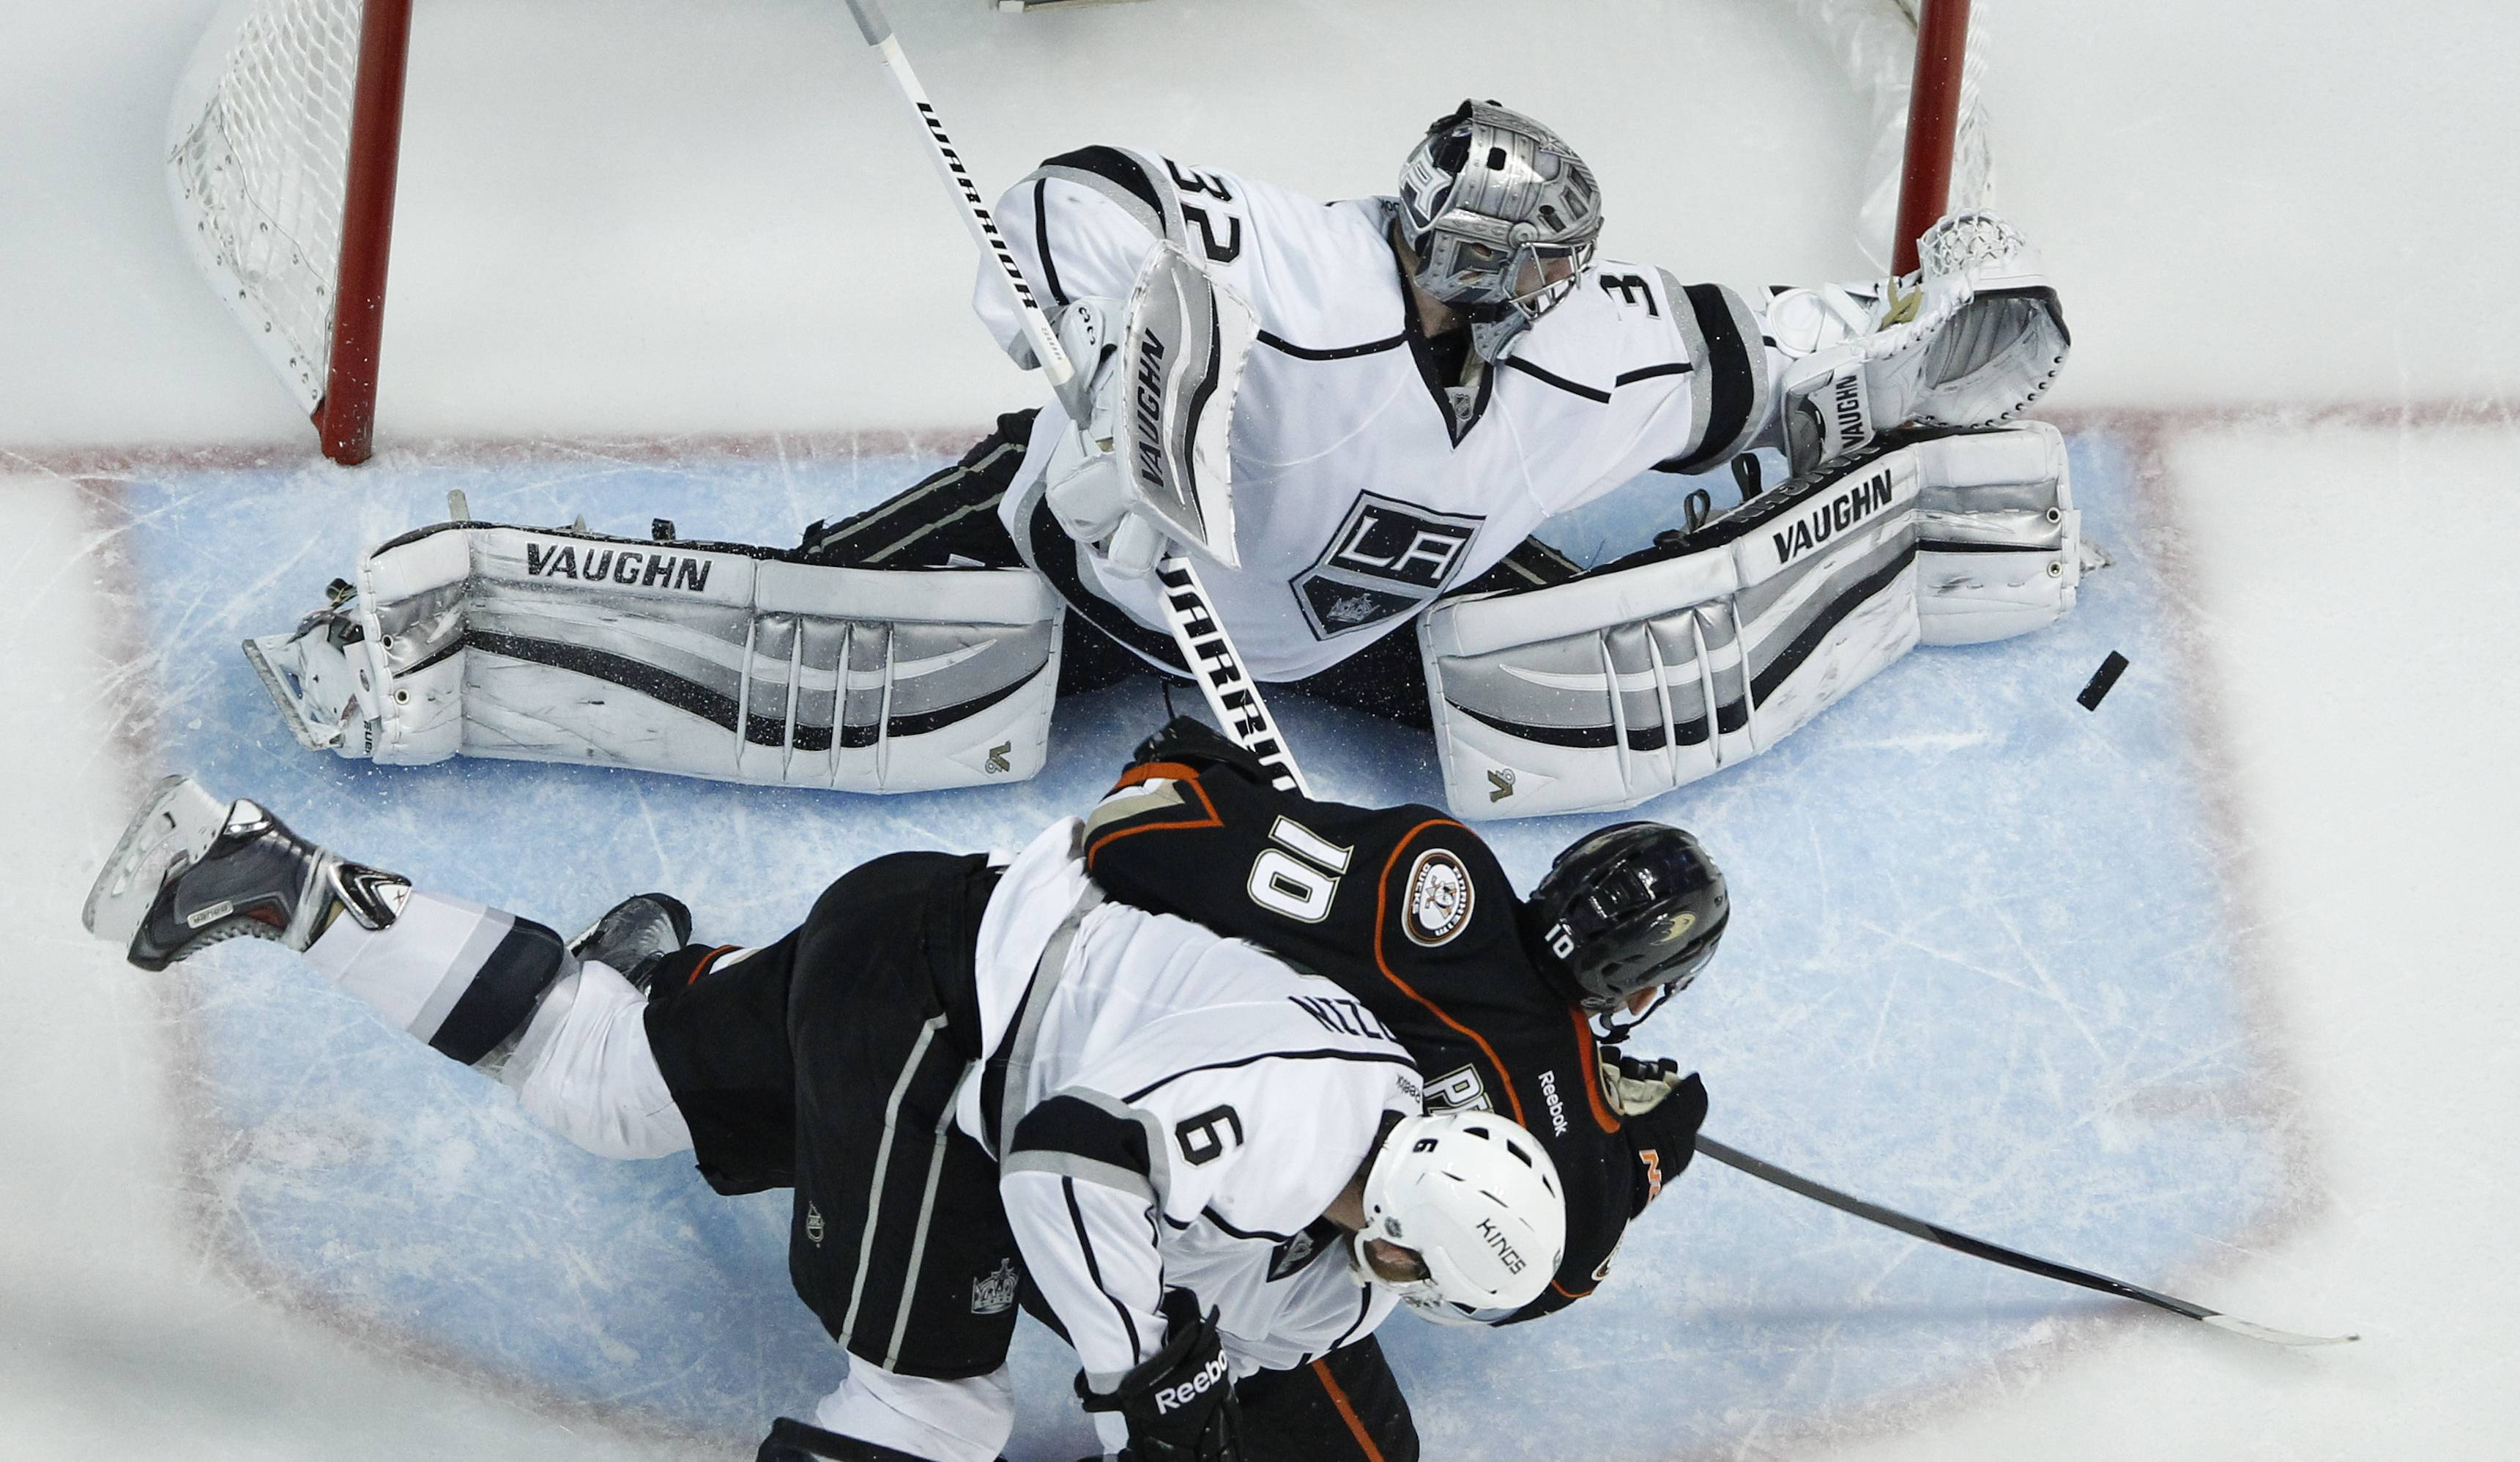 Los Angeles Kings goalie Jonathan Quick blocks a shot from Anaheim Ducks right wing Corey Perry with the help of Jake Muzzin during the second period in Game 7 of an NHL hockey second-round Stanley Cup playoff series in Anaheim, Calif., Friday, May 16, 2014.